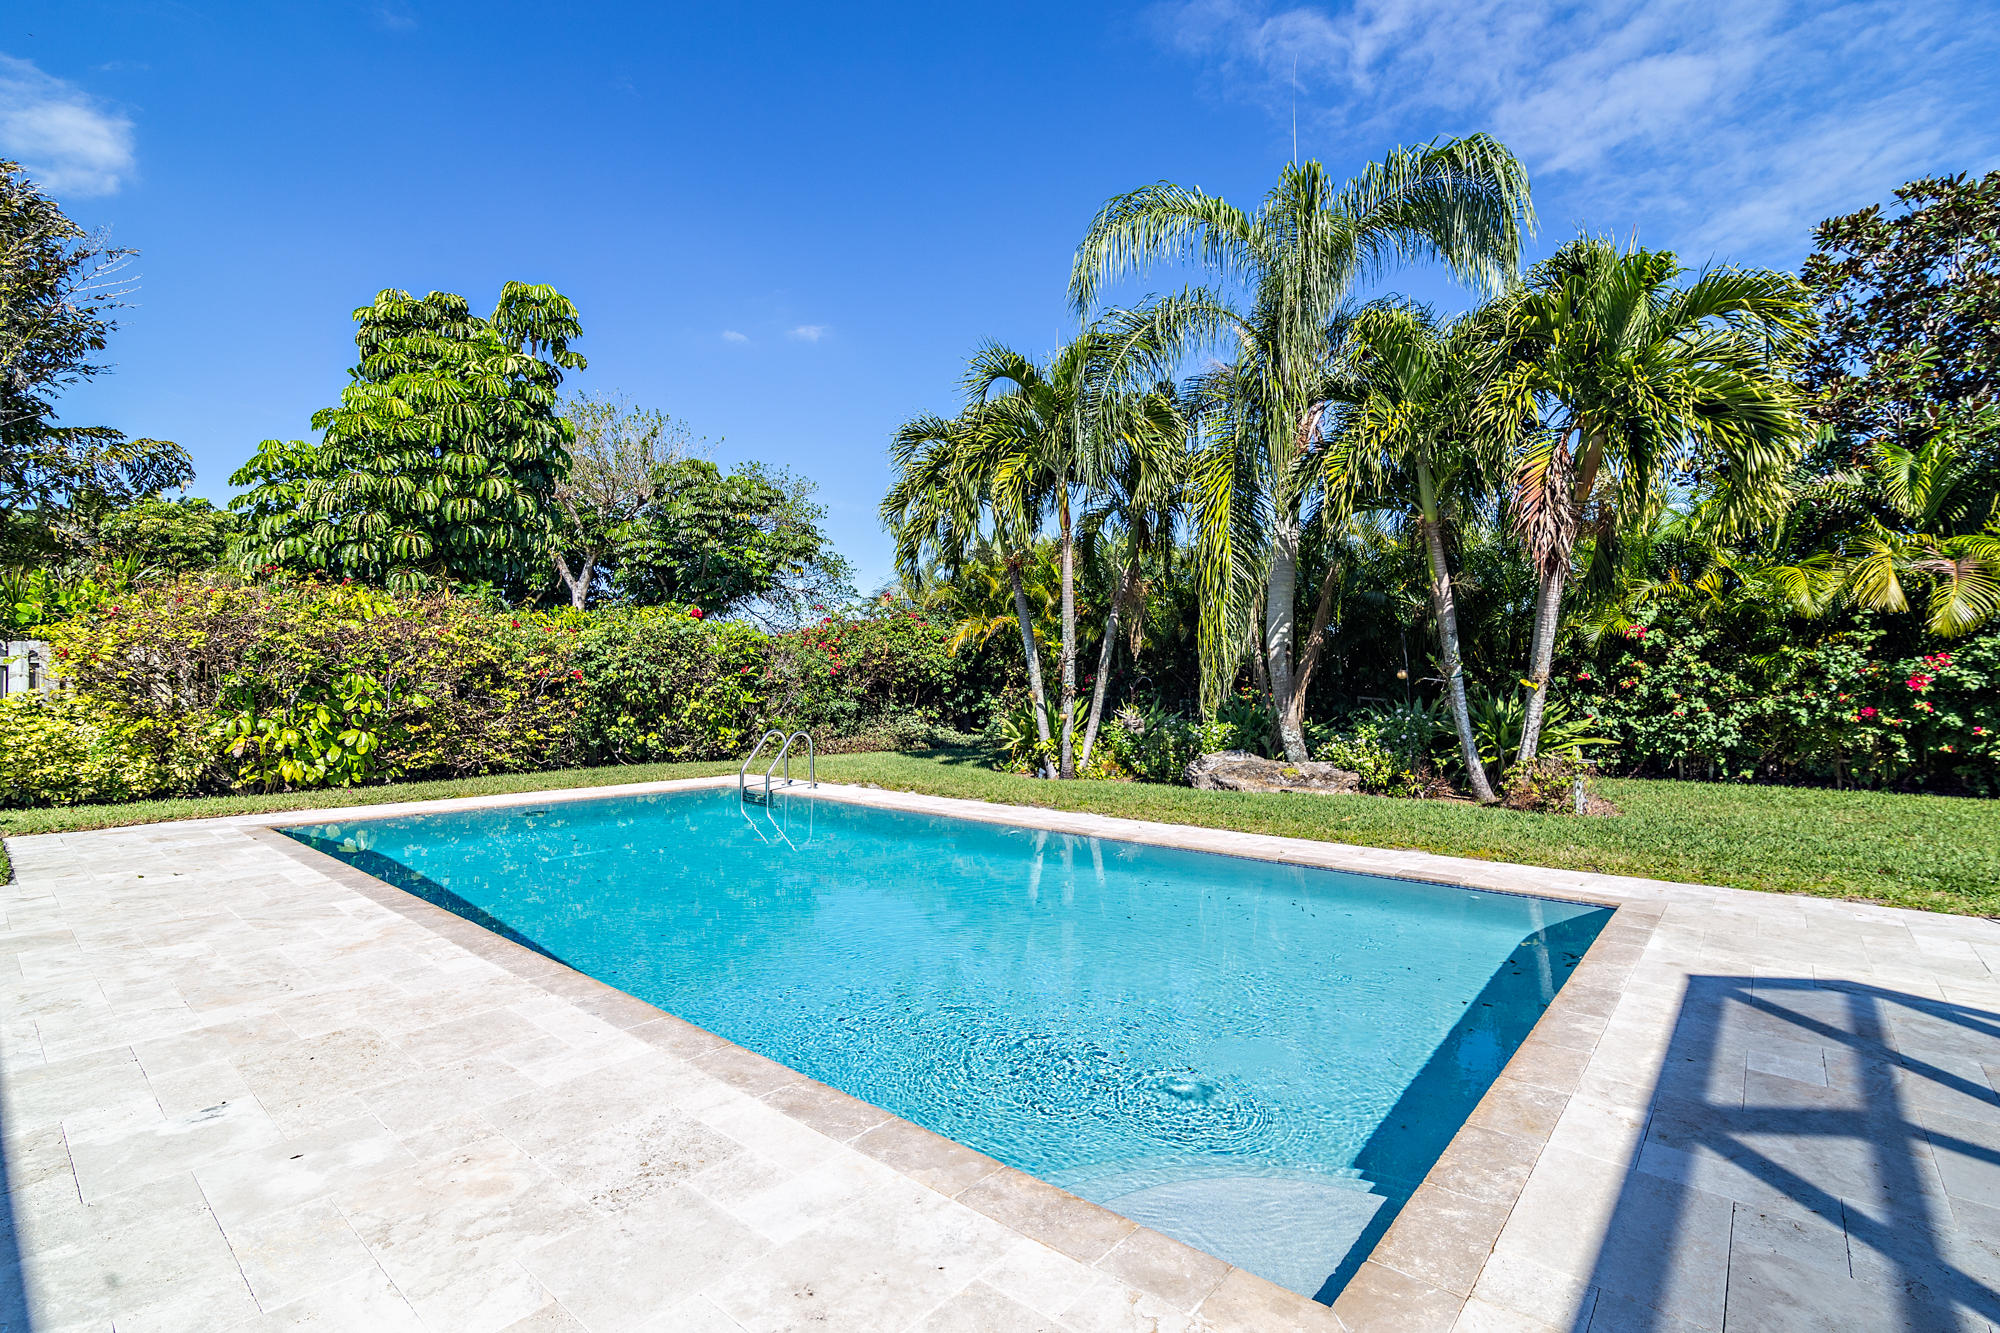 PRESIDENT COUNTRY CLUB WEST PALM BEACH REAL ESTATE